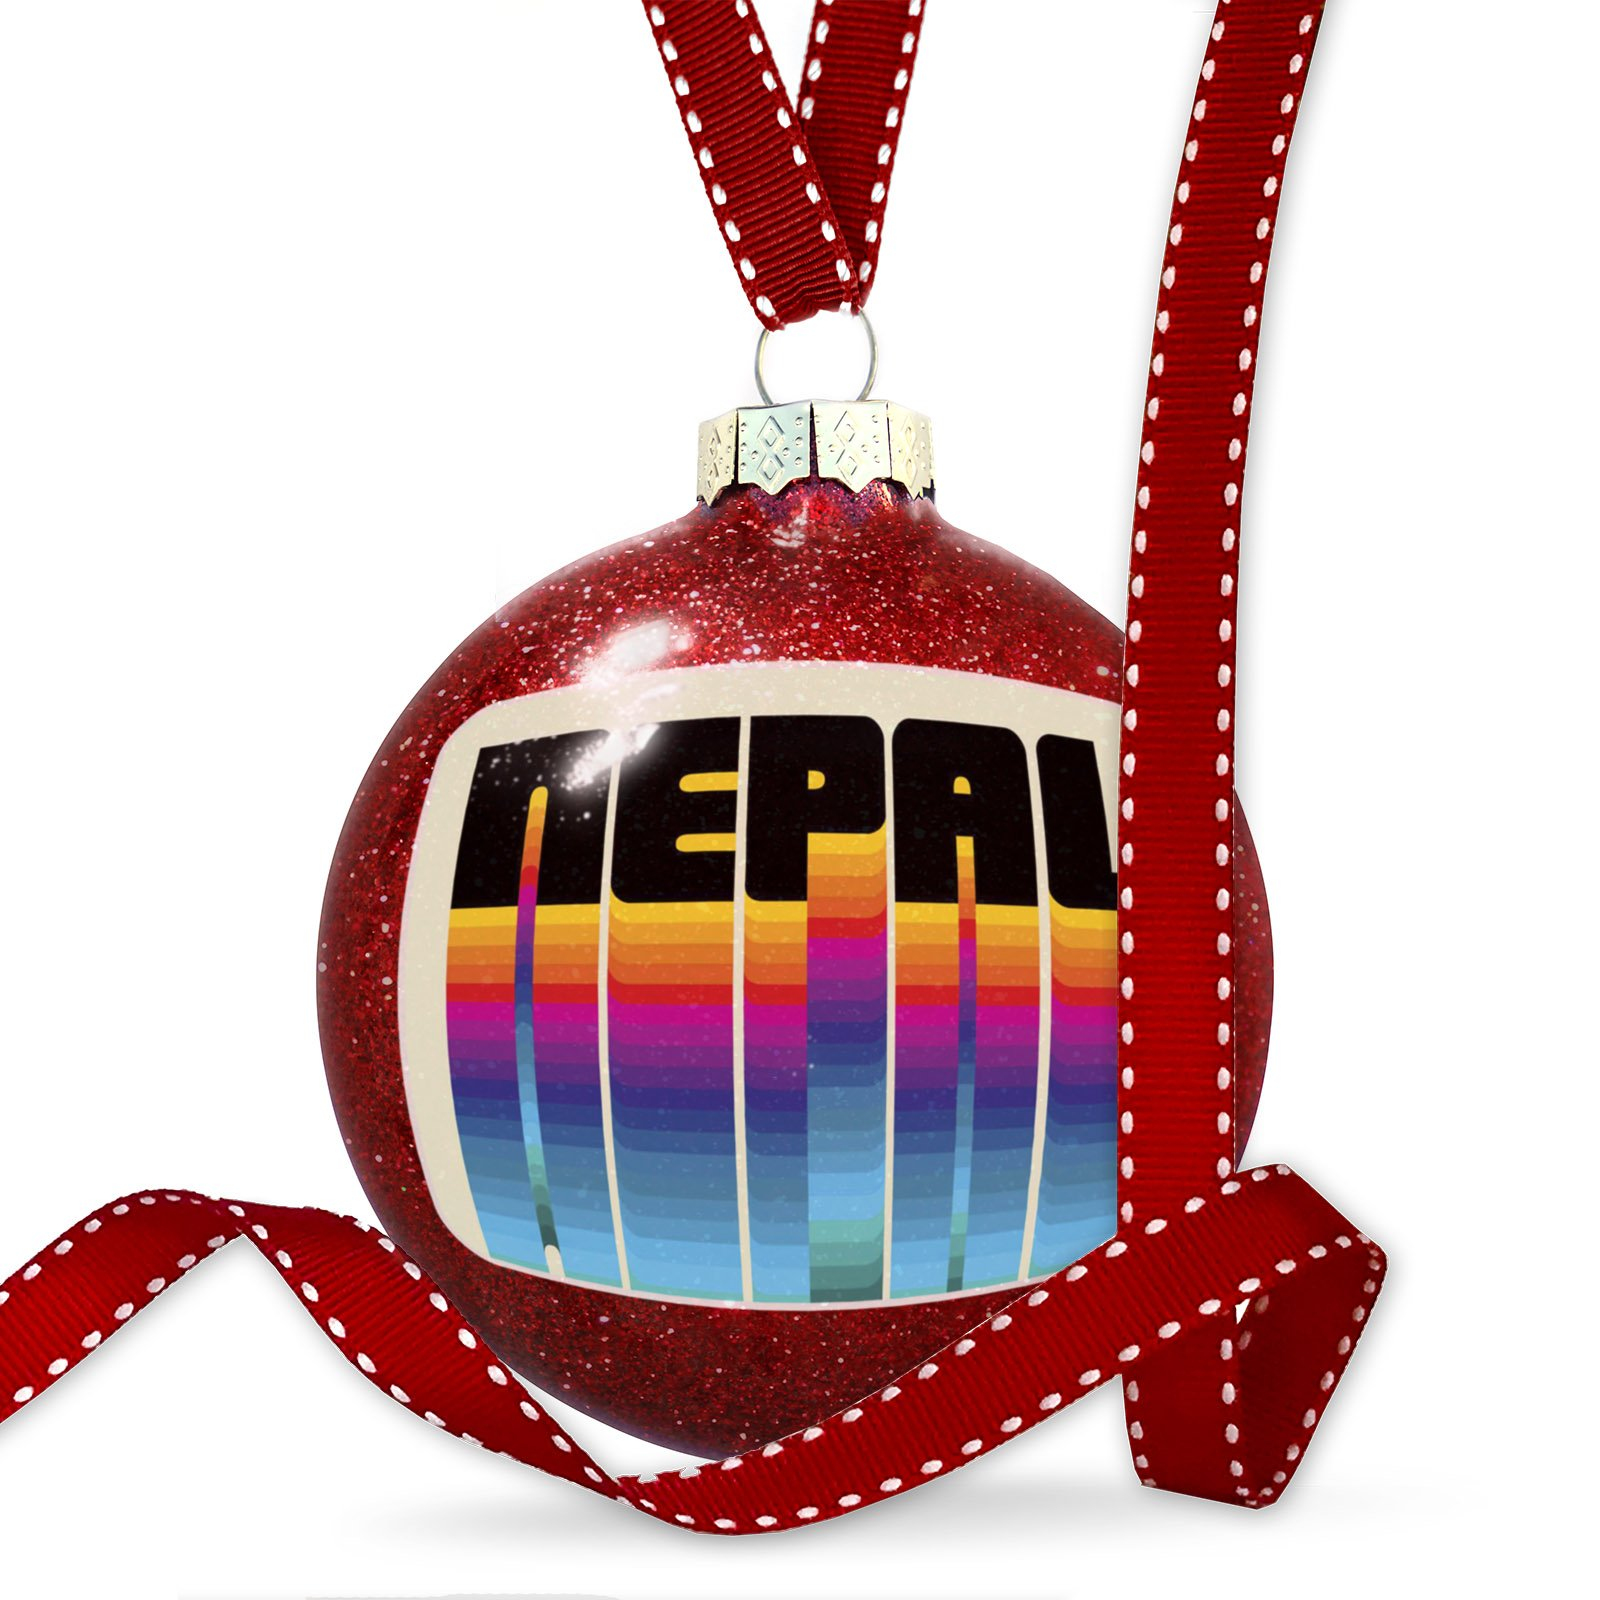 Christmas Decoration Retro Cites States Countries Nepal Ornament by NEONBLOND (Image #1)